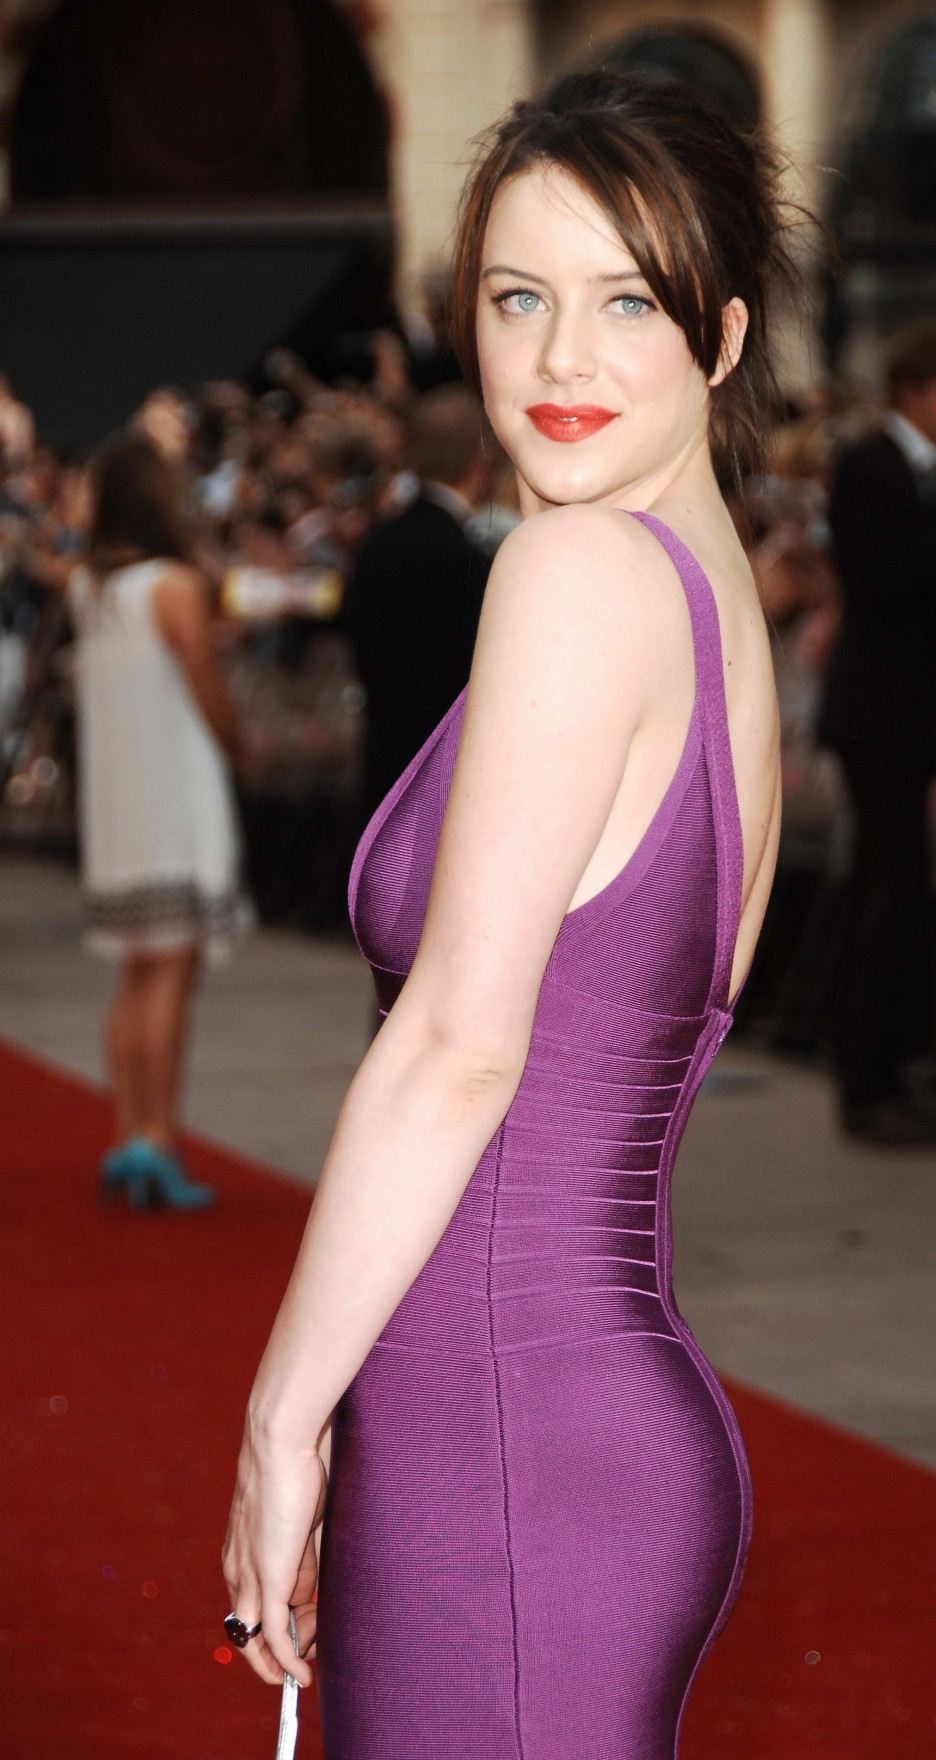 Watch Michelle Ryan (born 1984) video